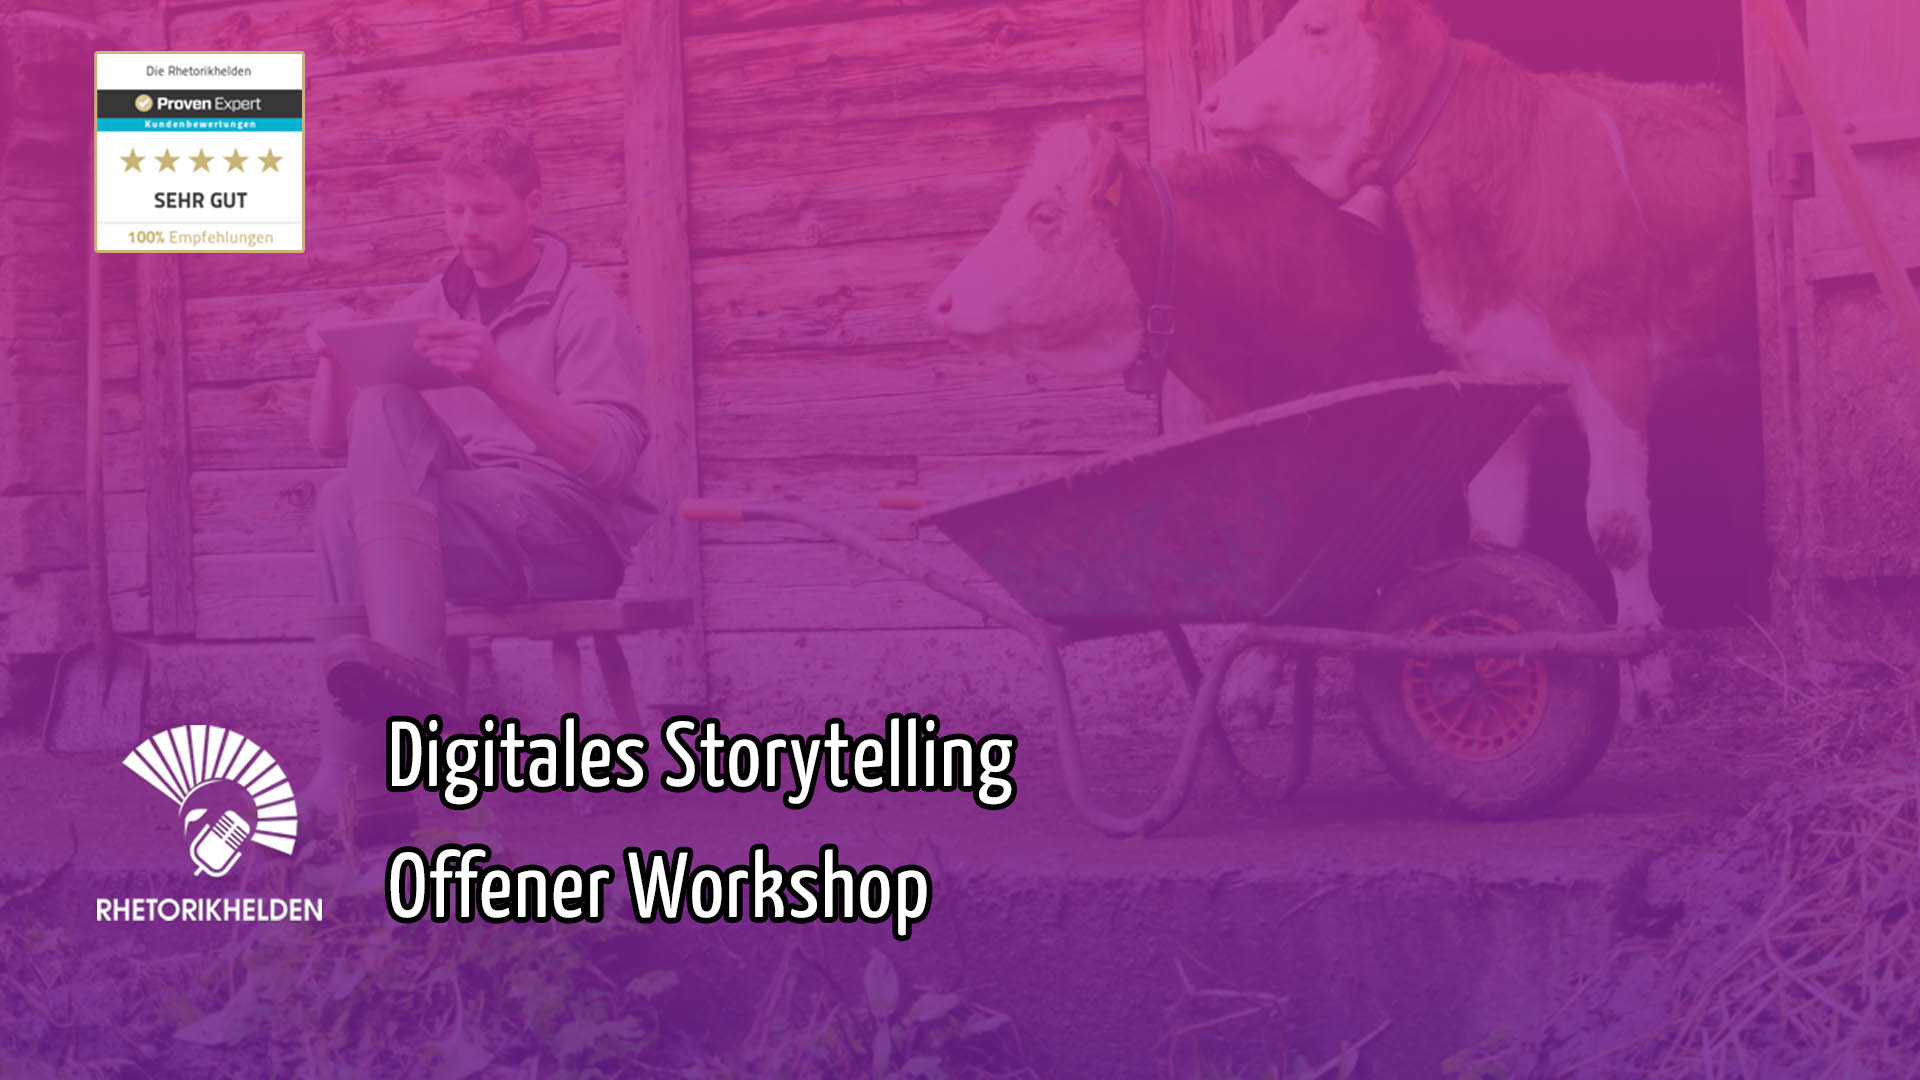 offener-workshop-digitales-storytelling-rhetorikhelden